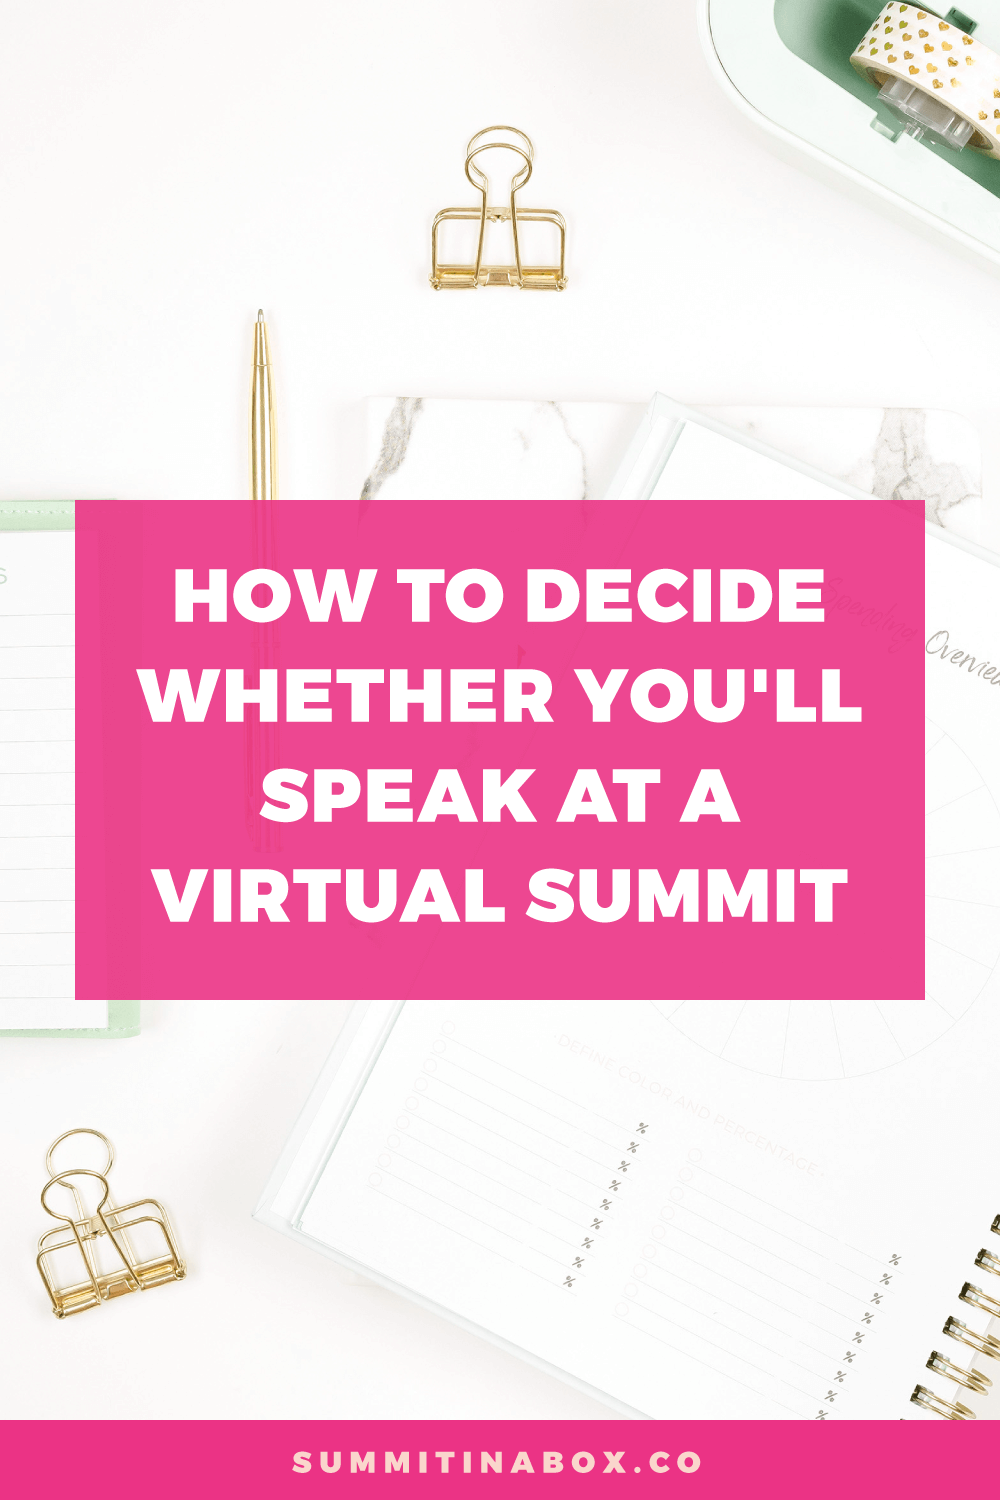 Consider this before you decide to speak at a virtual summit: the host, availability, fit, likelihood that you'll benefit, and your desire to participate.